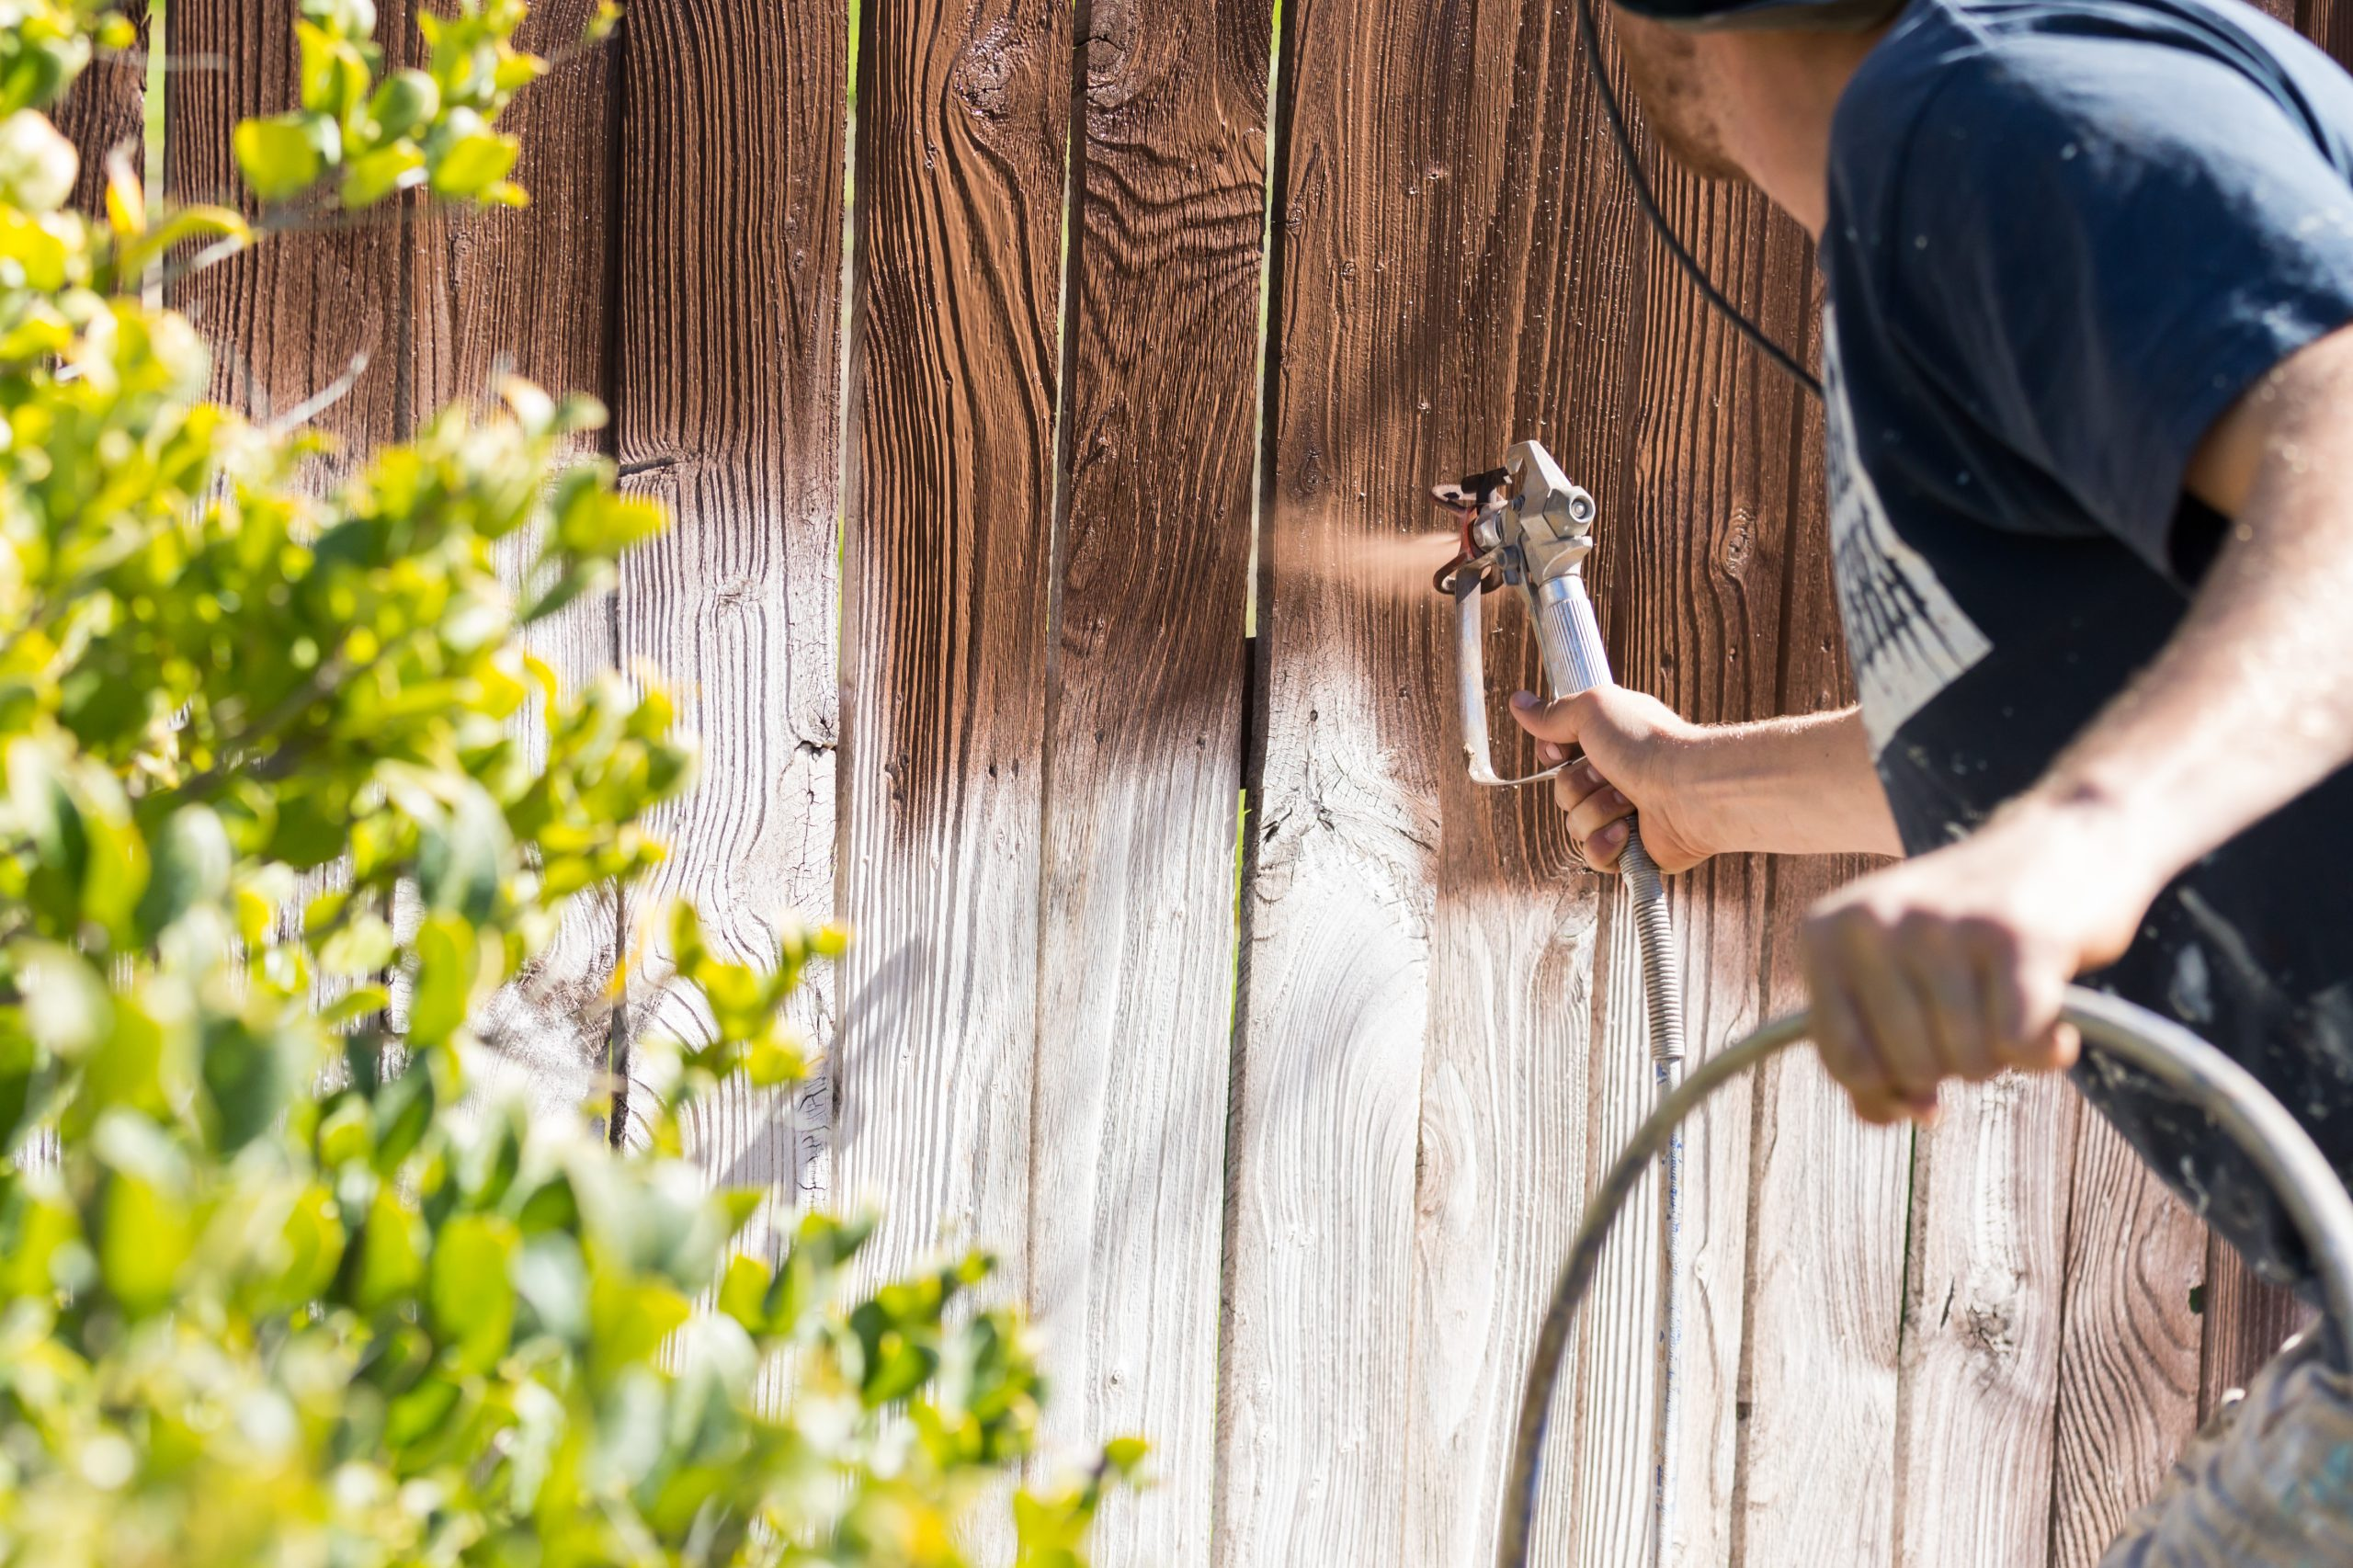 fence stain seal service fencing contractor fences repair service